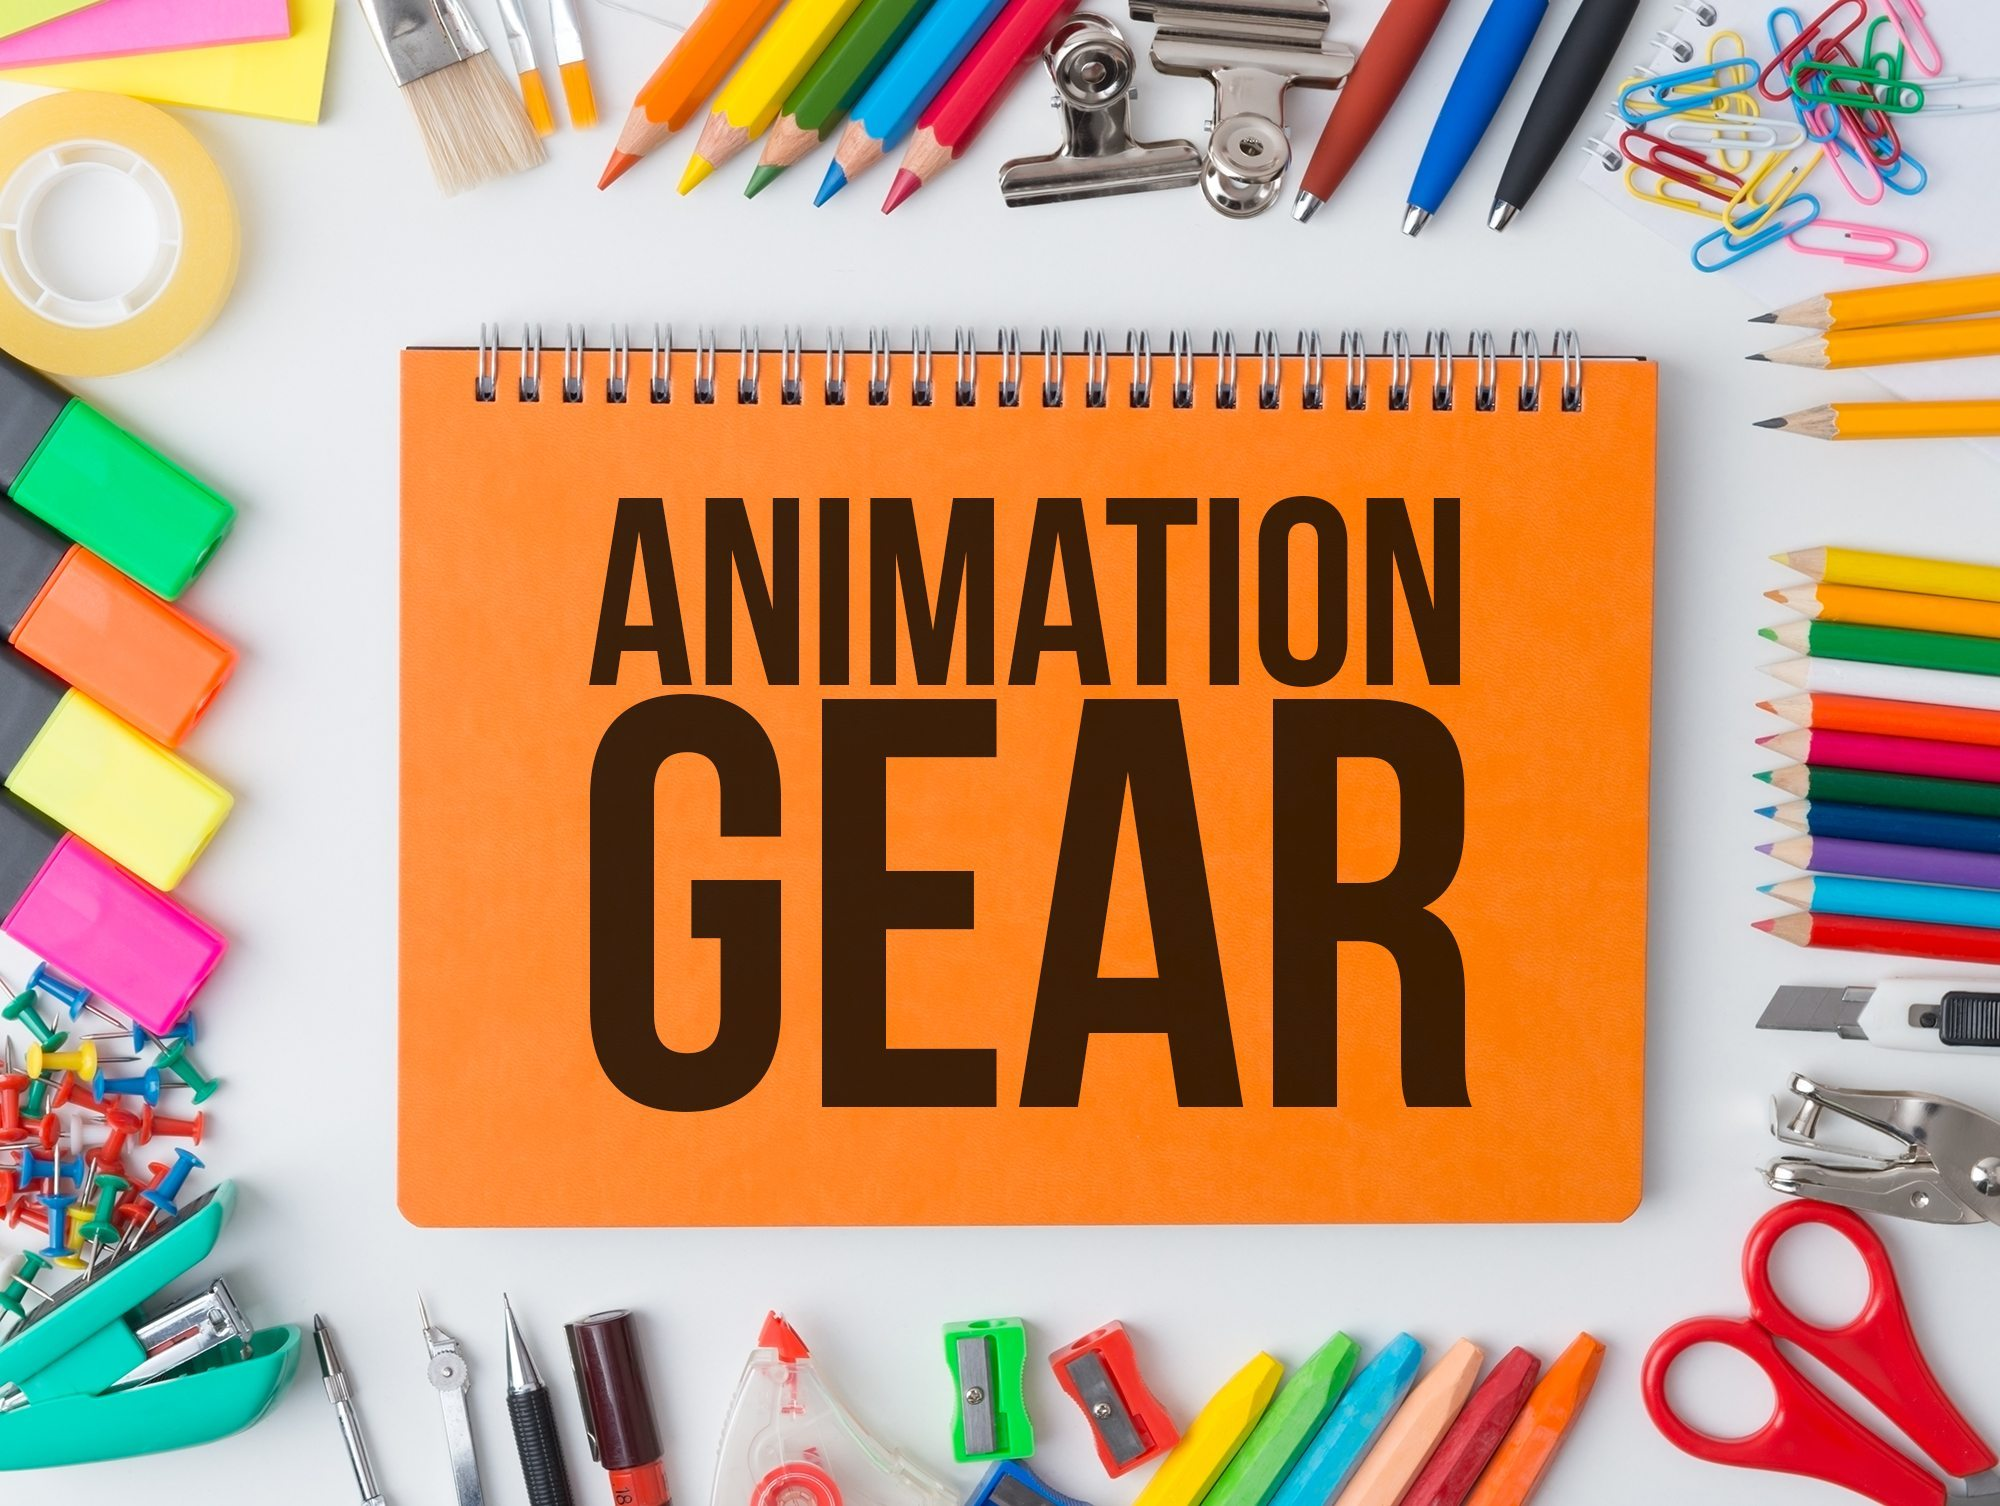 Animation Gear